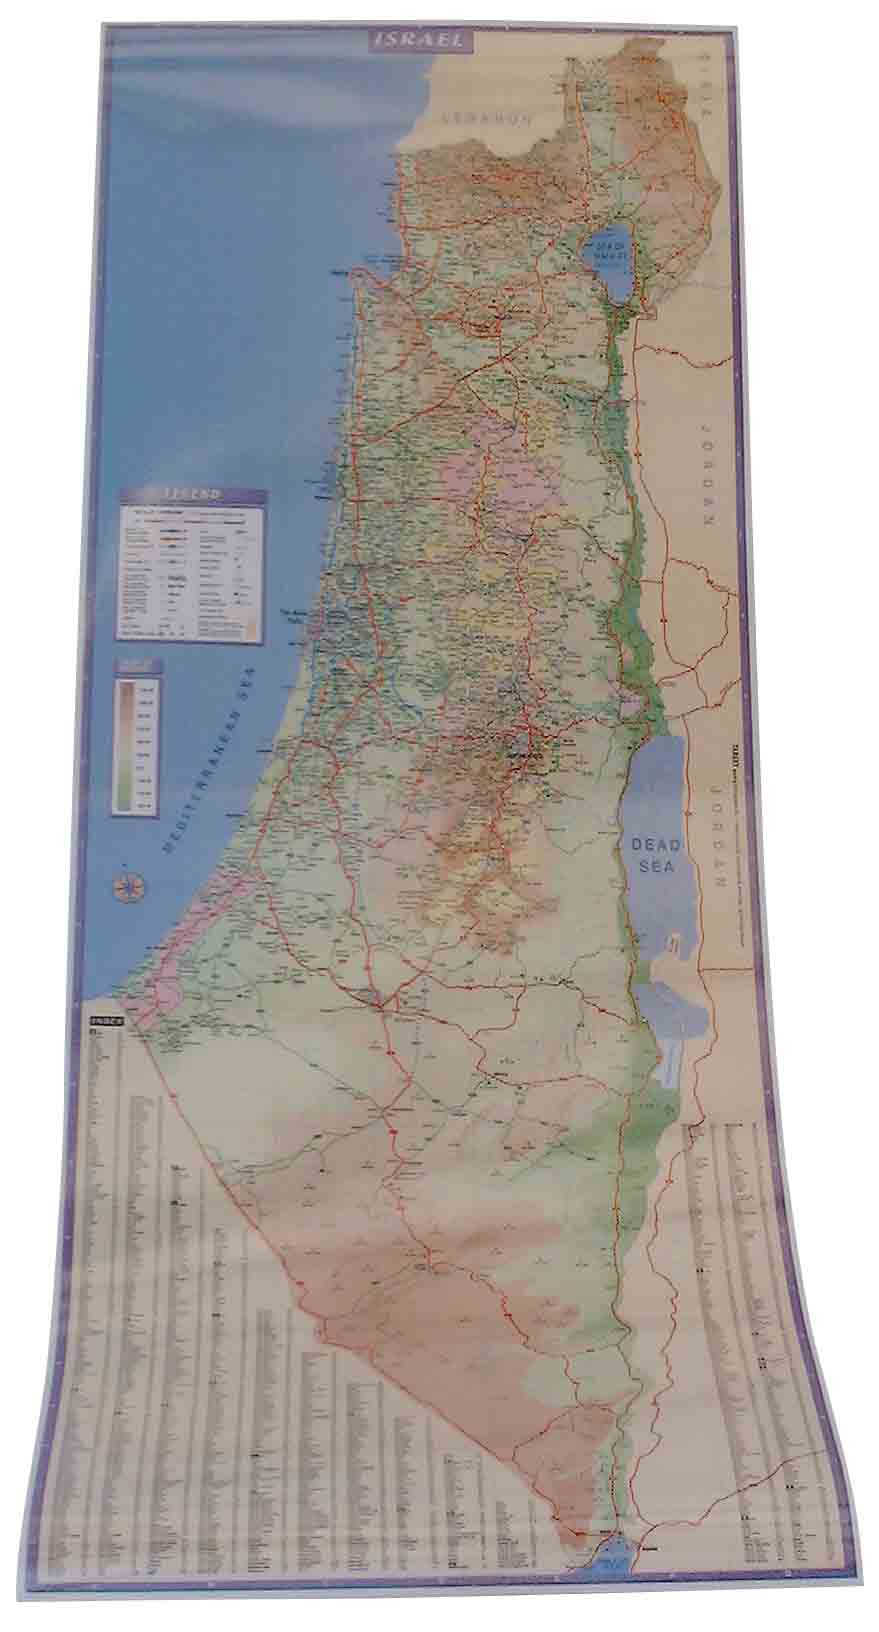 39x12 in English<br>Israeli Map 7387.